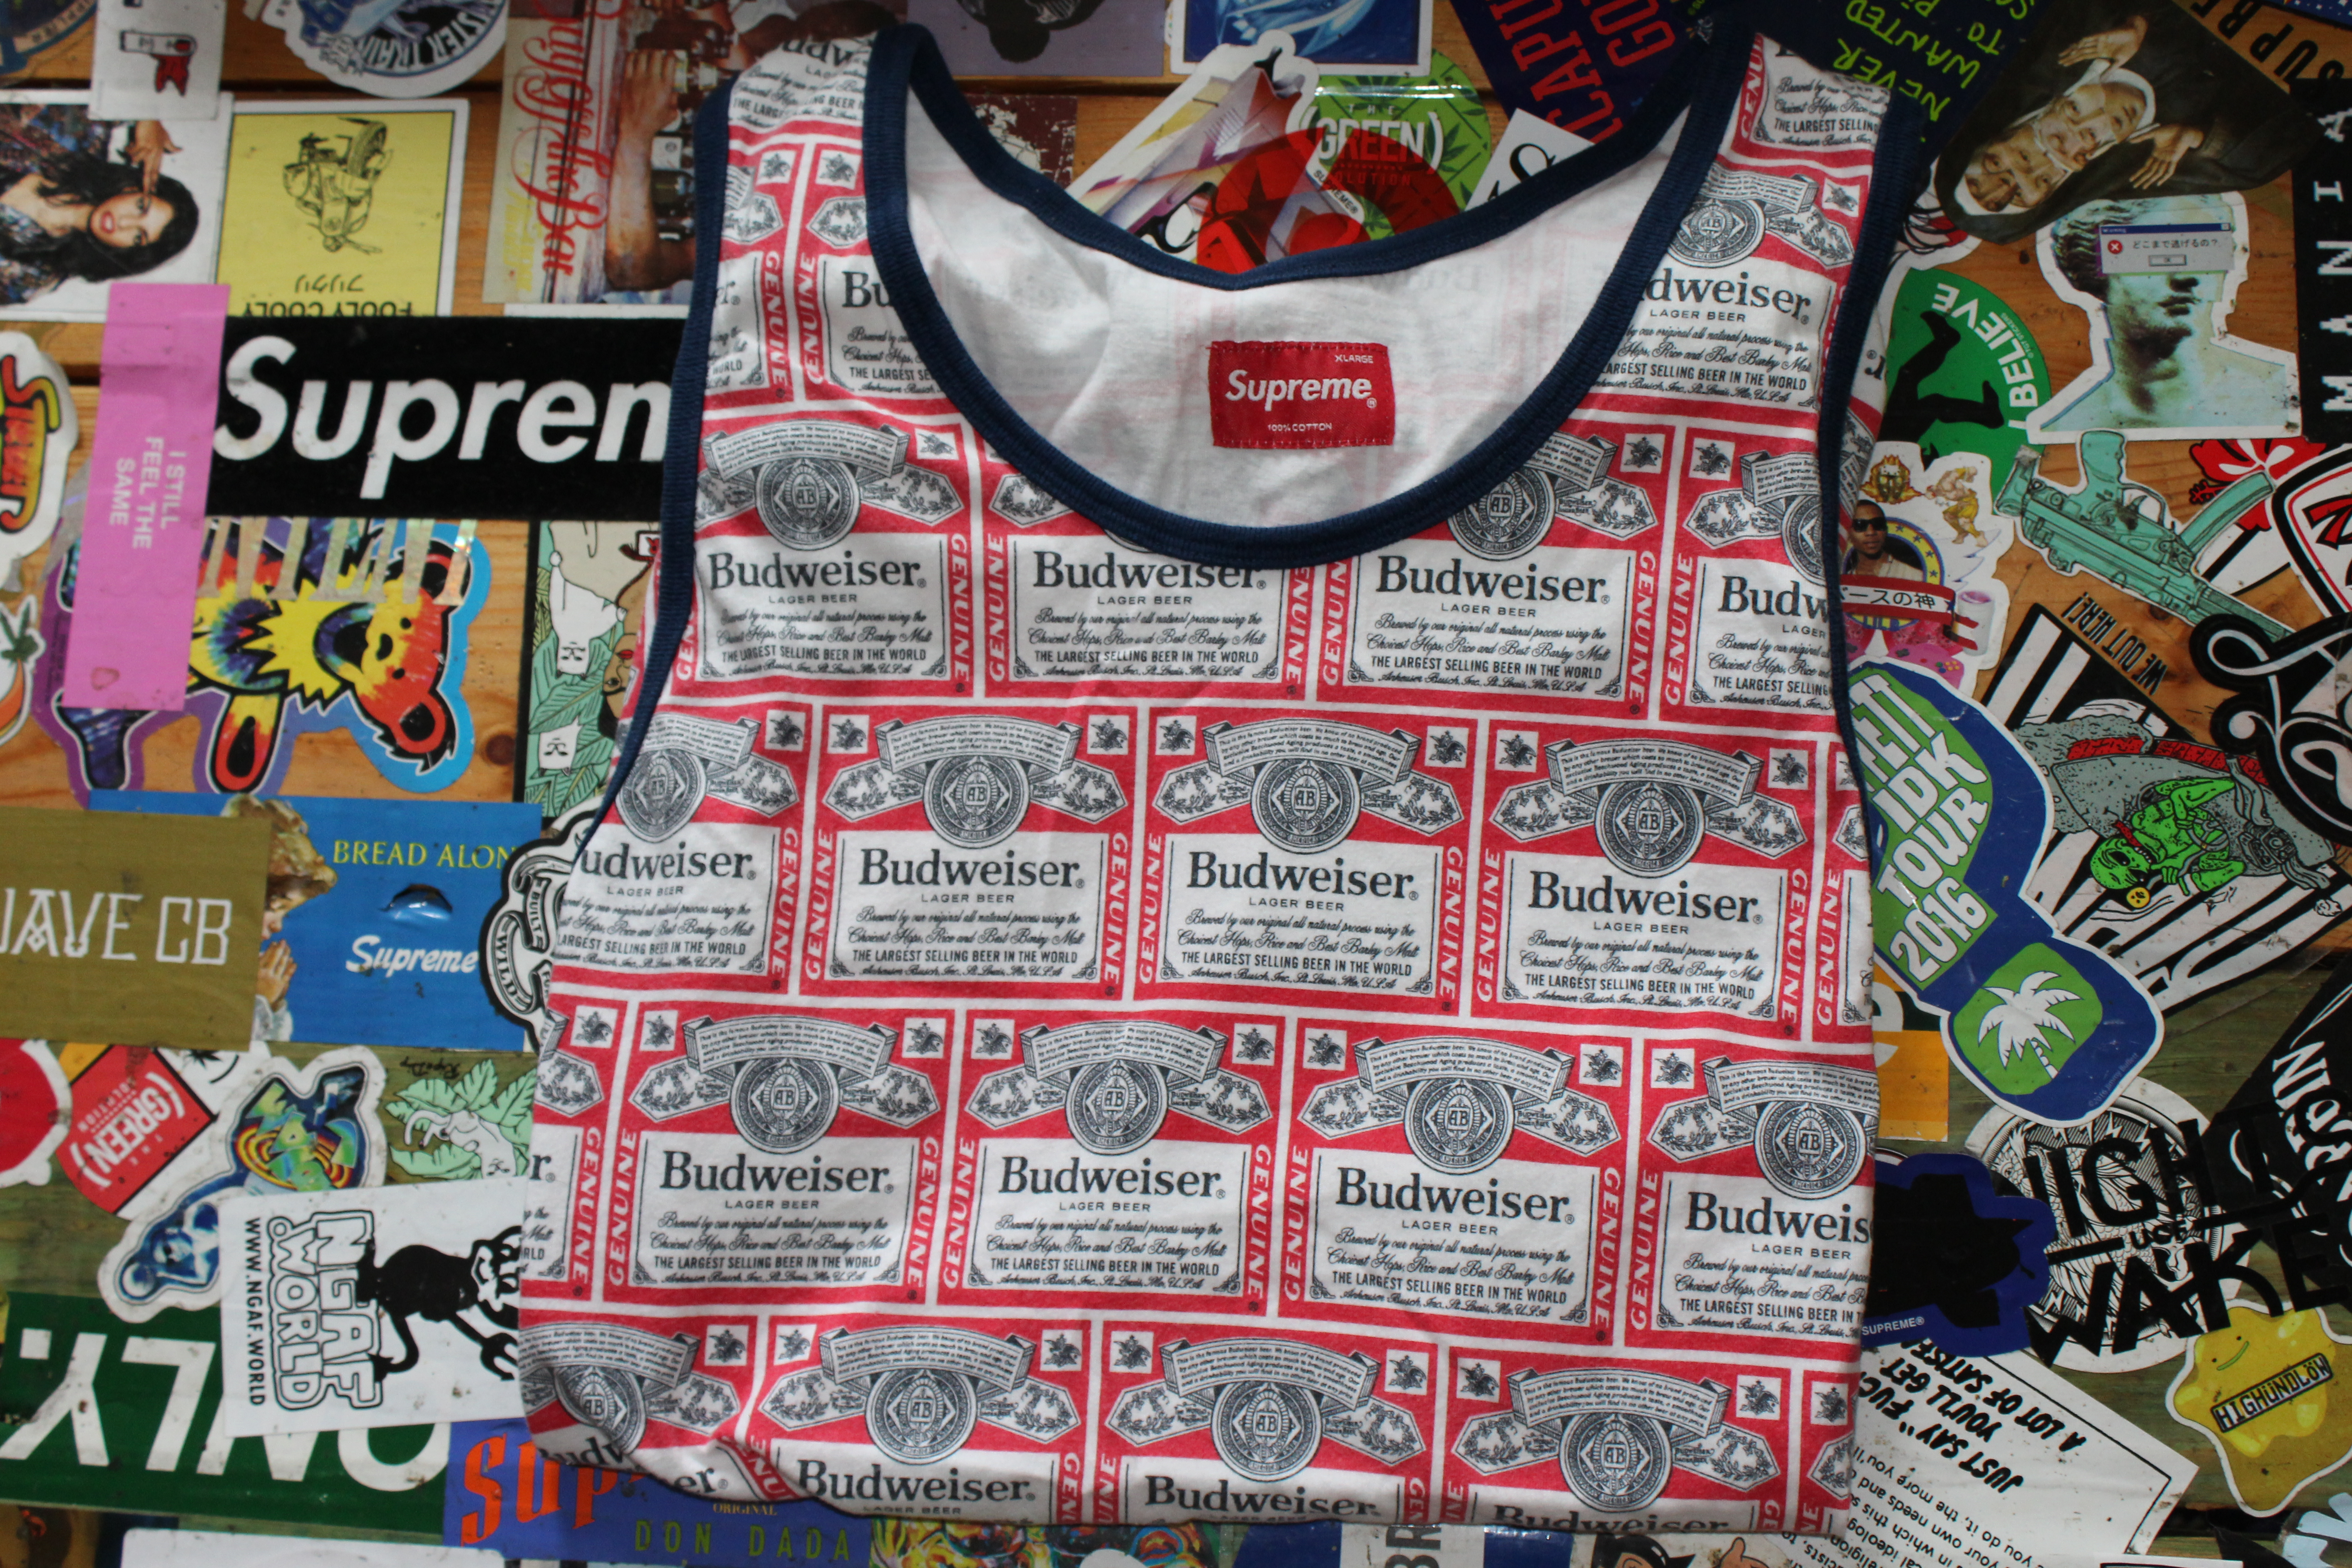 10aee41c714 Supreme Budweiser Tank Size xl - Tank Tops   Sleeveless for Sale - Grailed